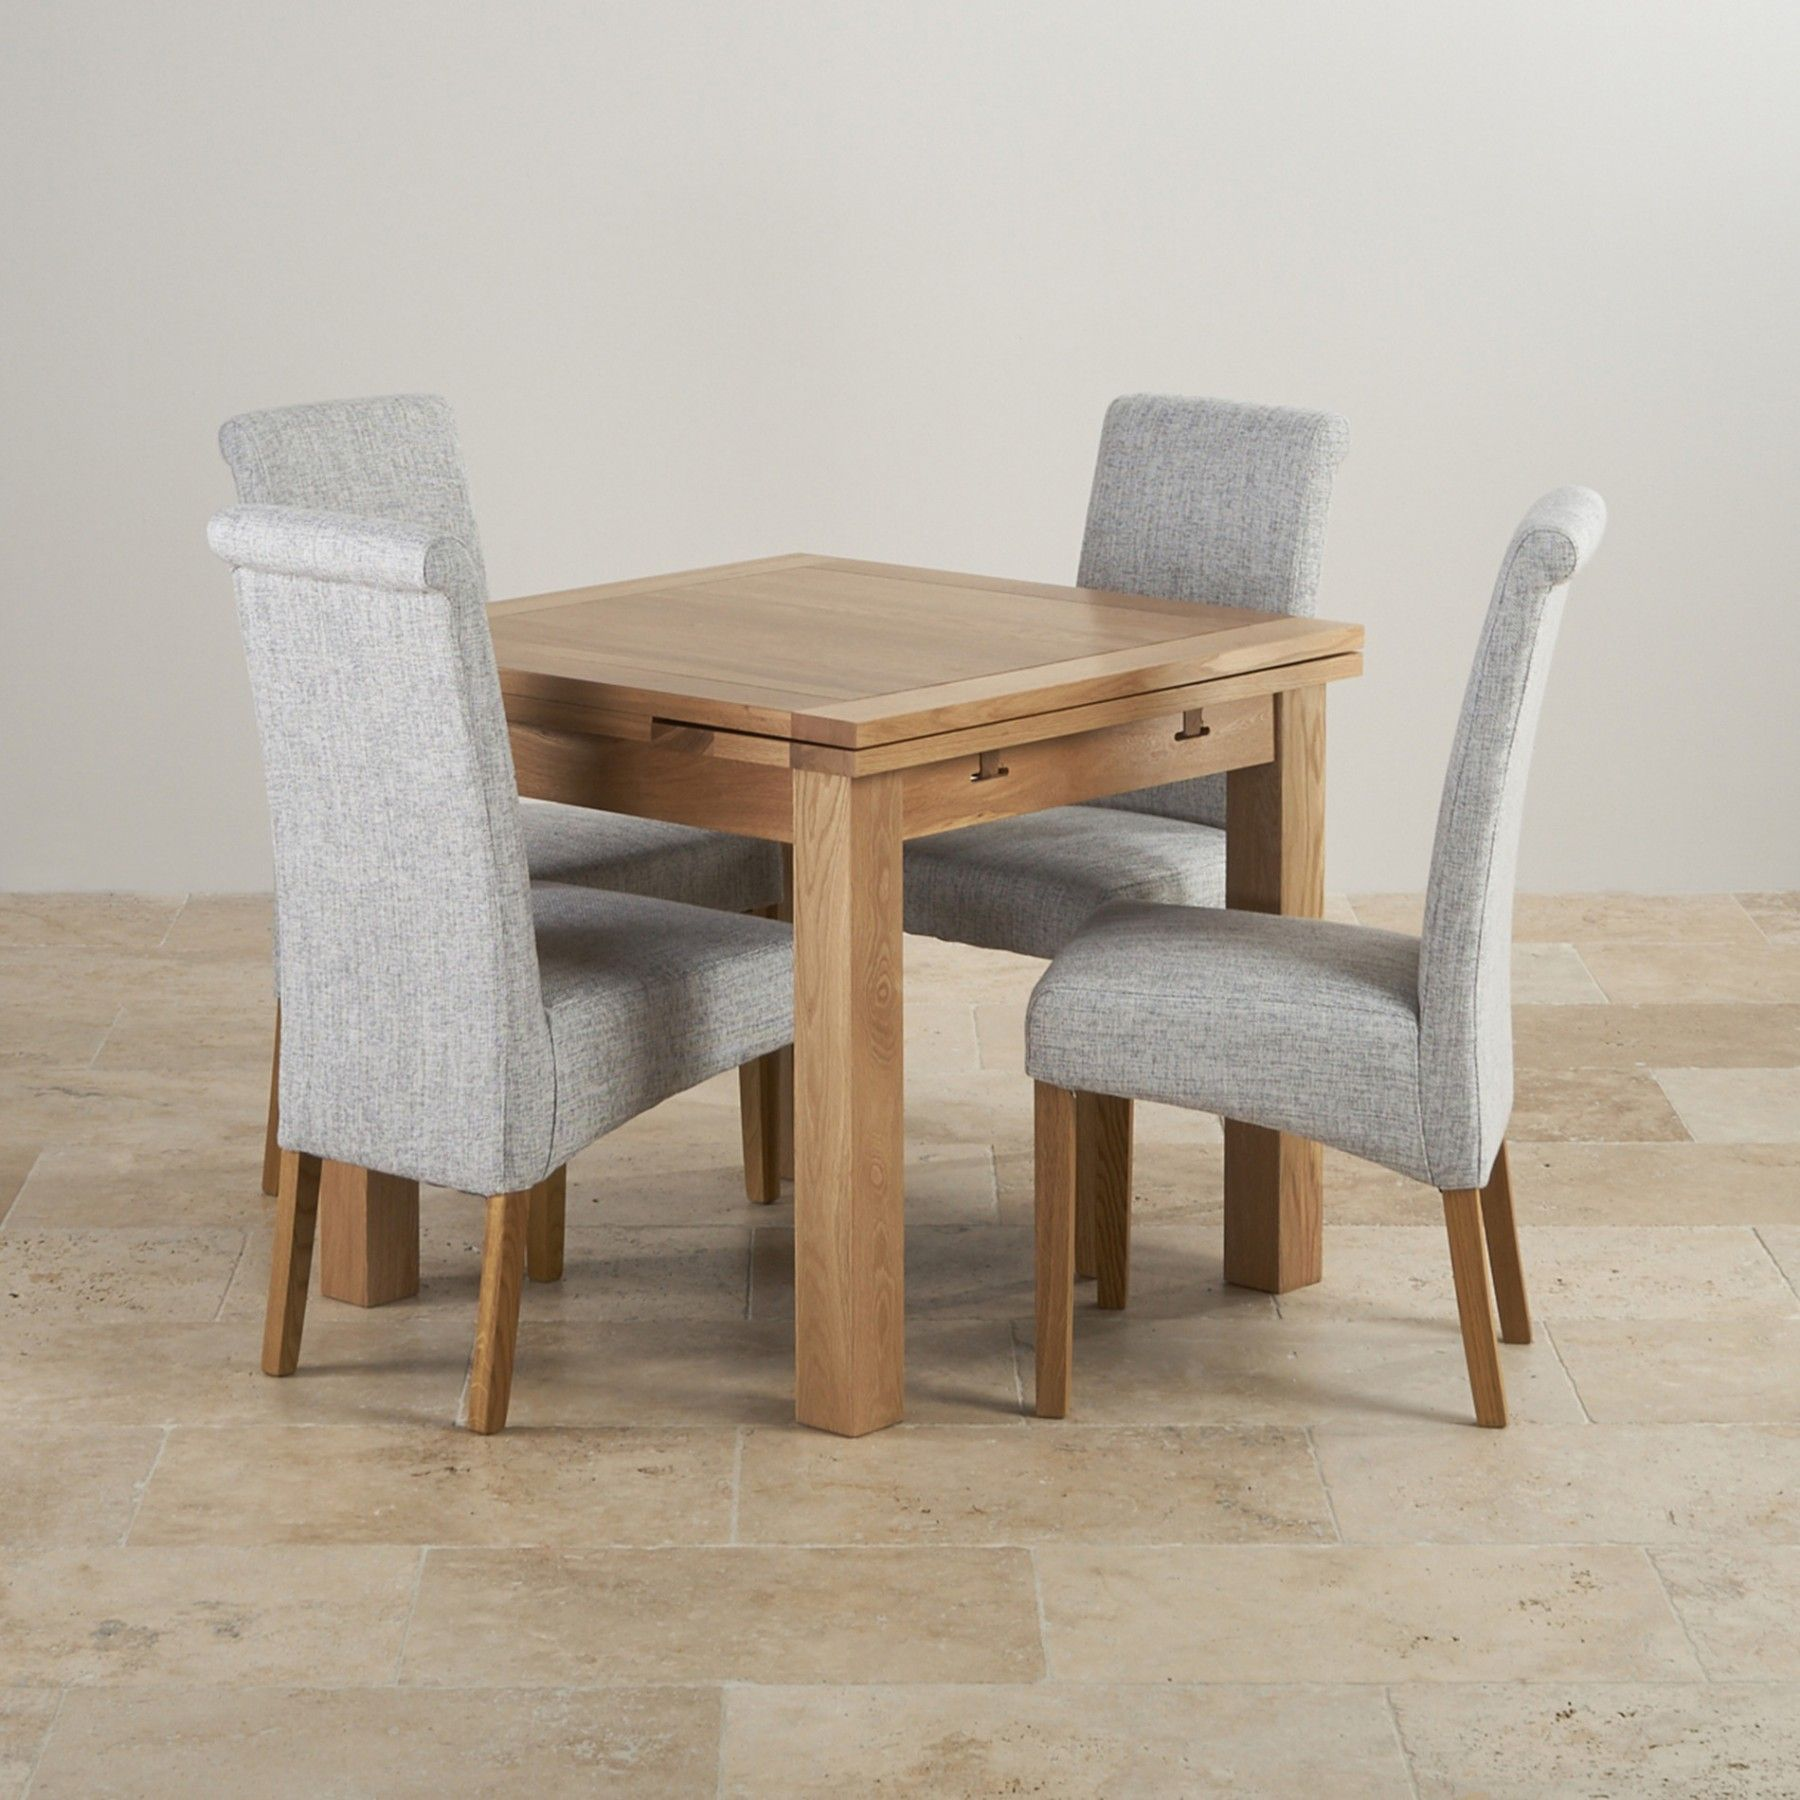 Enjoyable Dorset Natural Solid Oak Dining Set 3Ft Extending Table Creativecarmelina Interior Chair Design Creativecarmelinacom